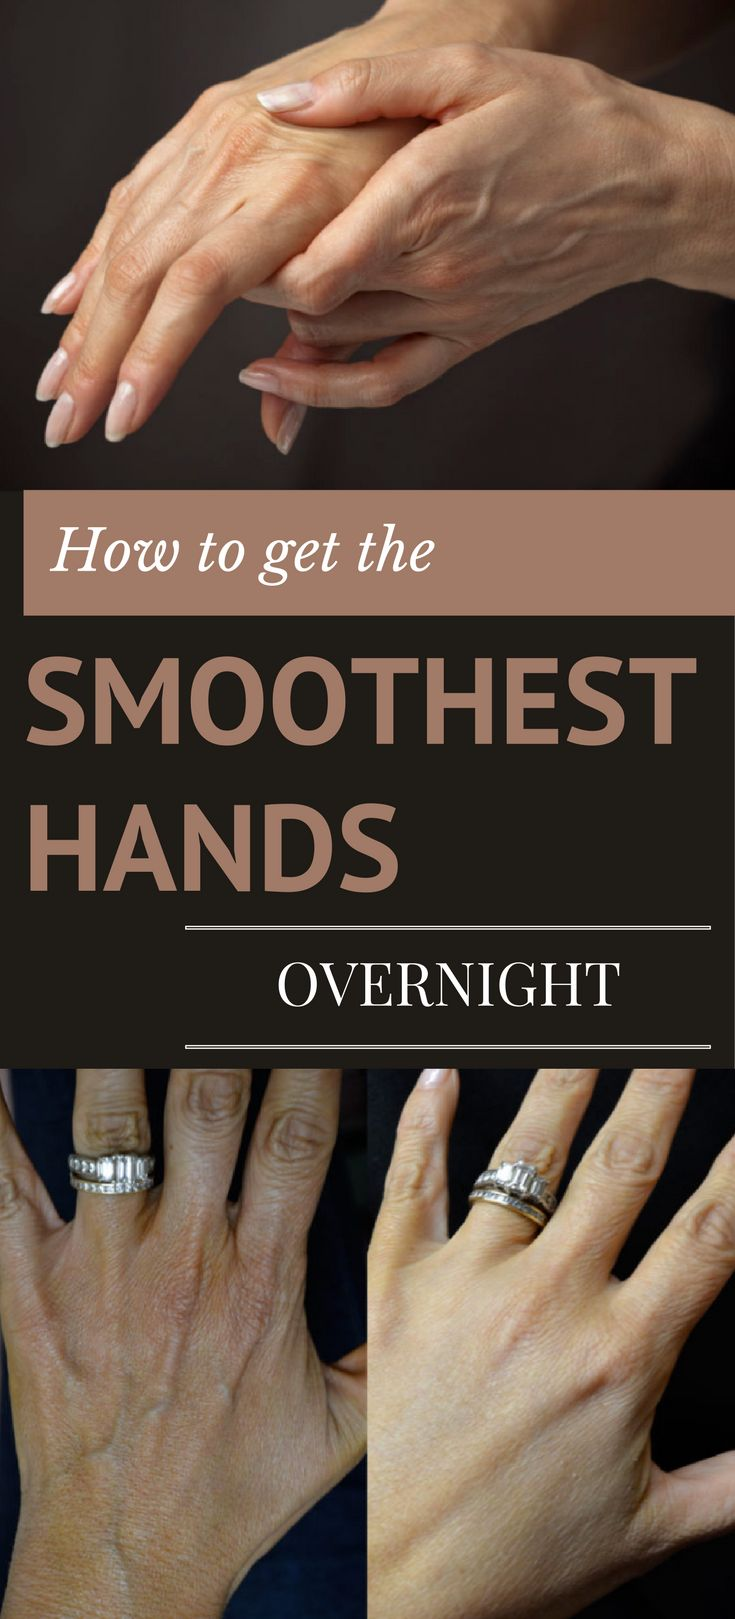 How to Get the Smoothest Hands Overnight